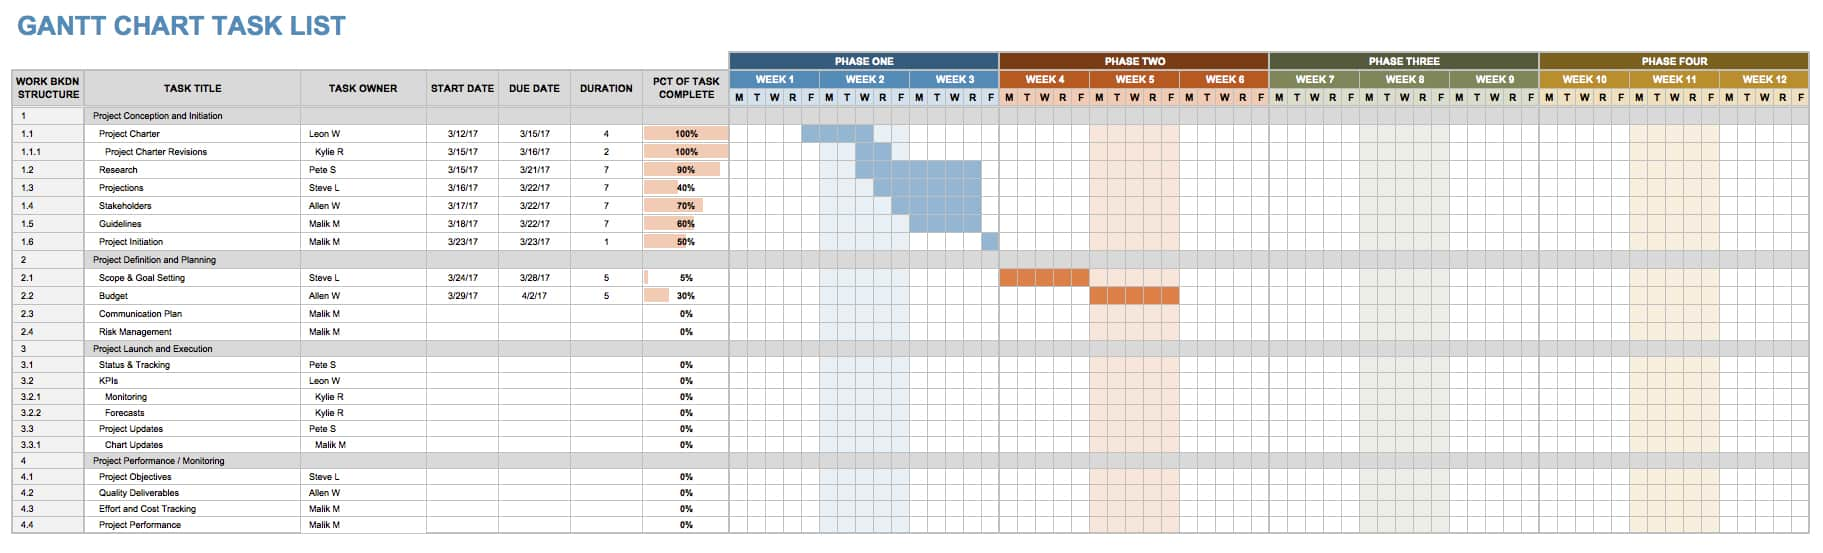 A Gantt chart can be useful for managing any task list that spans a set period of time.